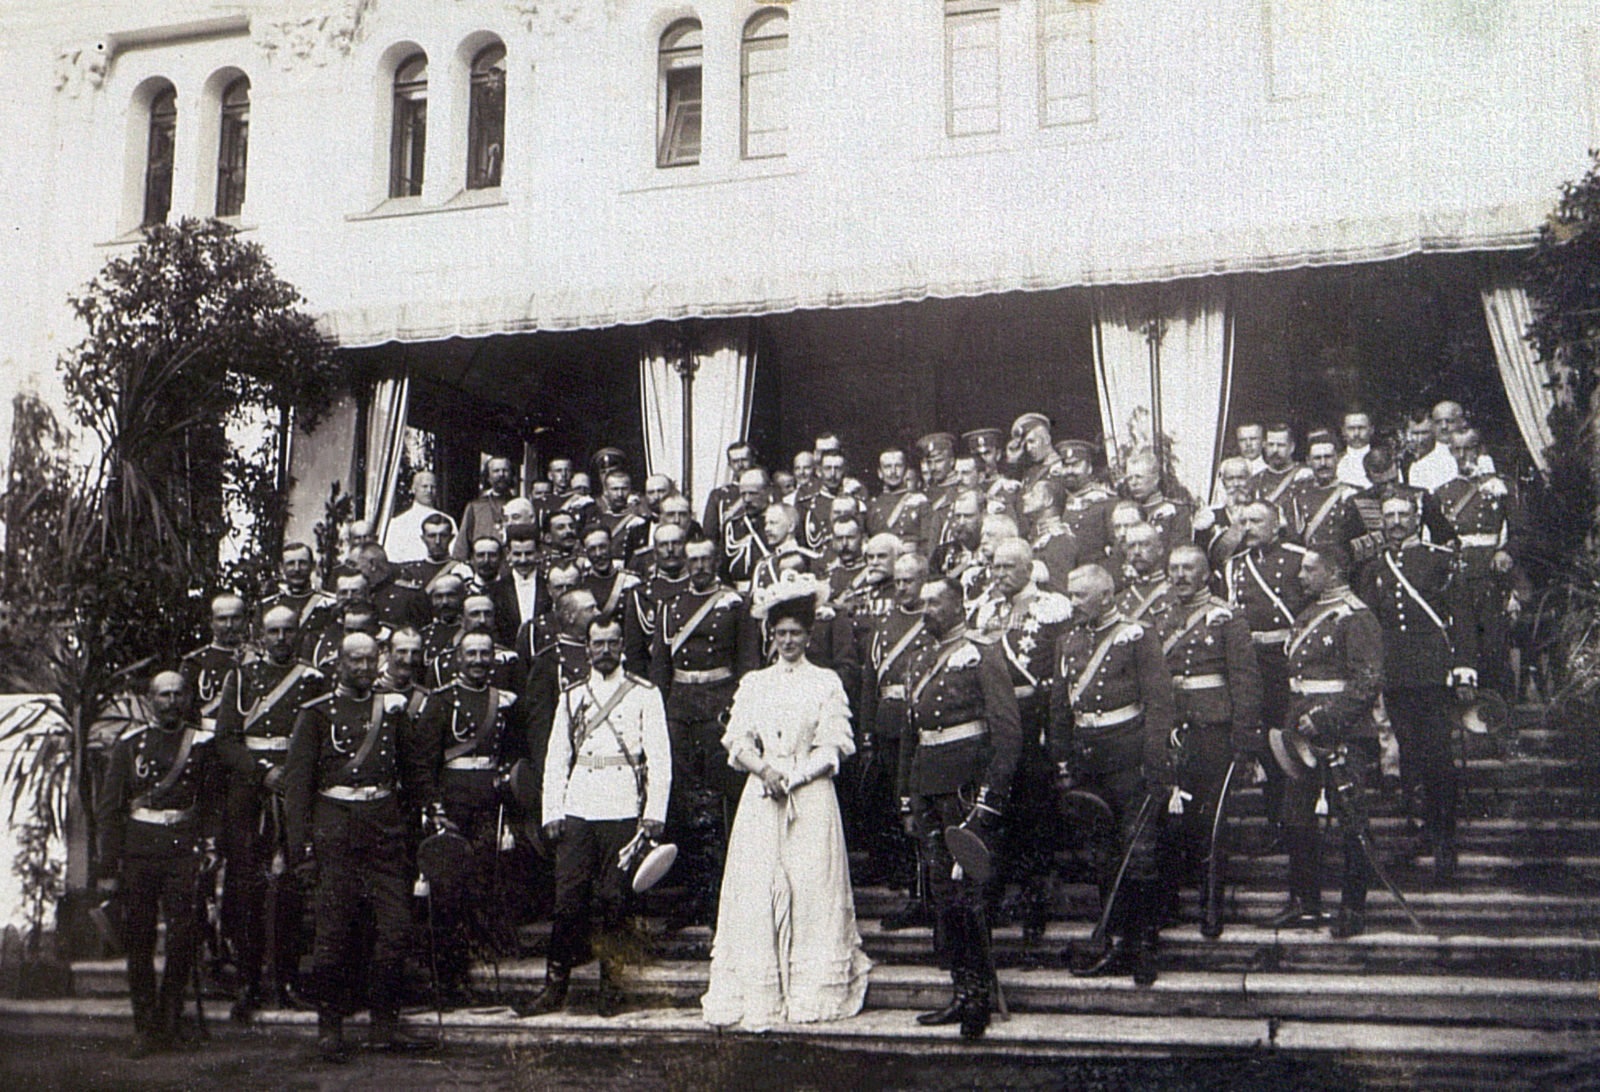 Emperor Nicholas II and Empress Alexandra Feodorovna with officers